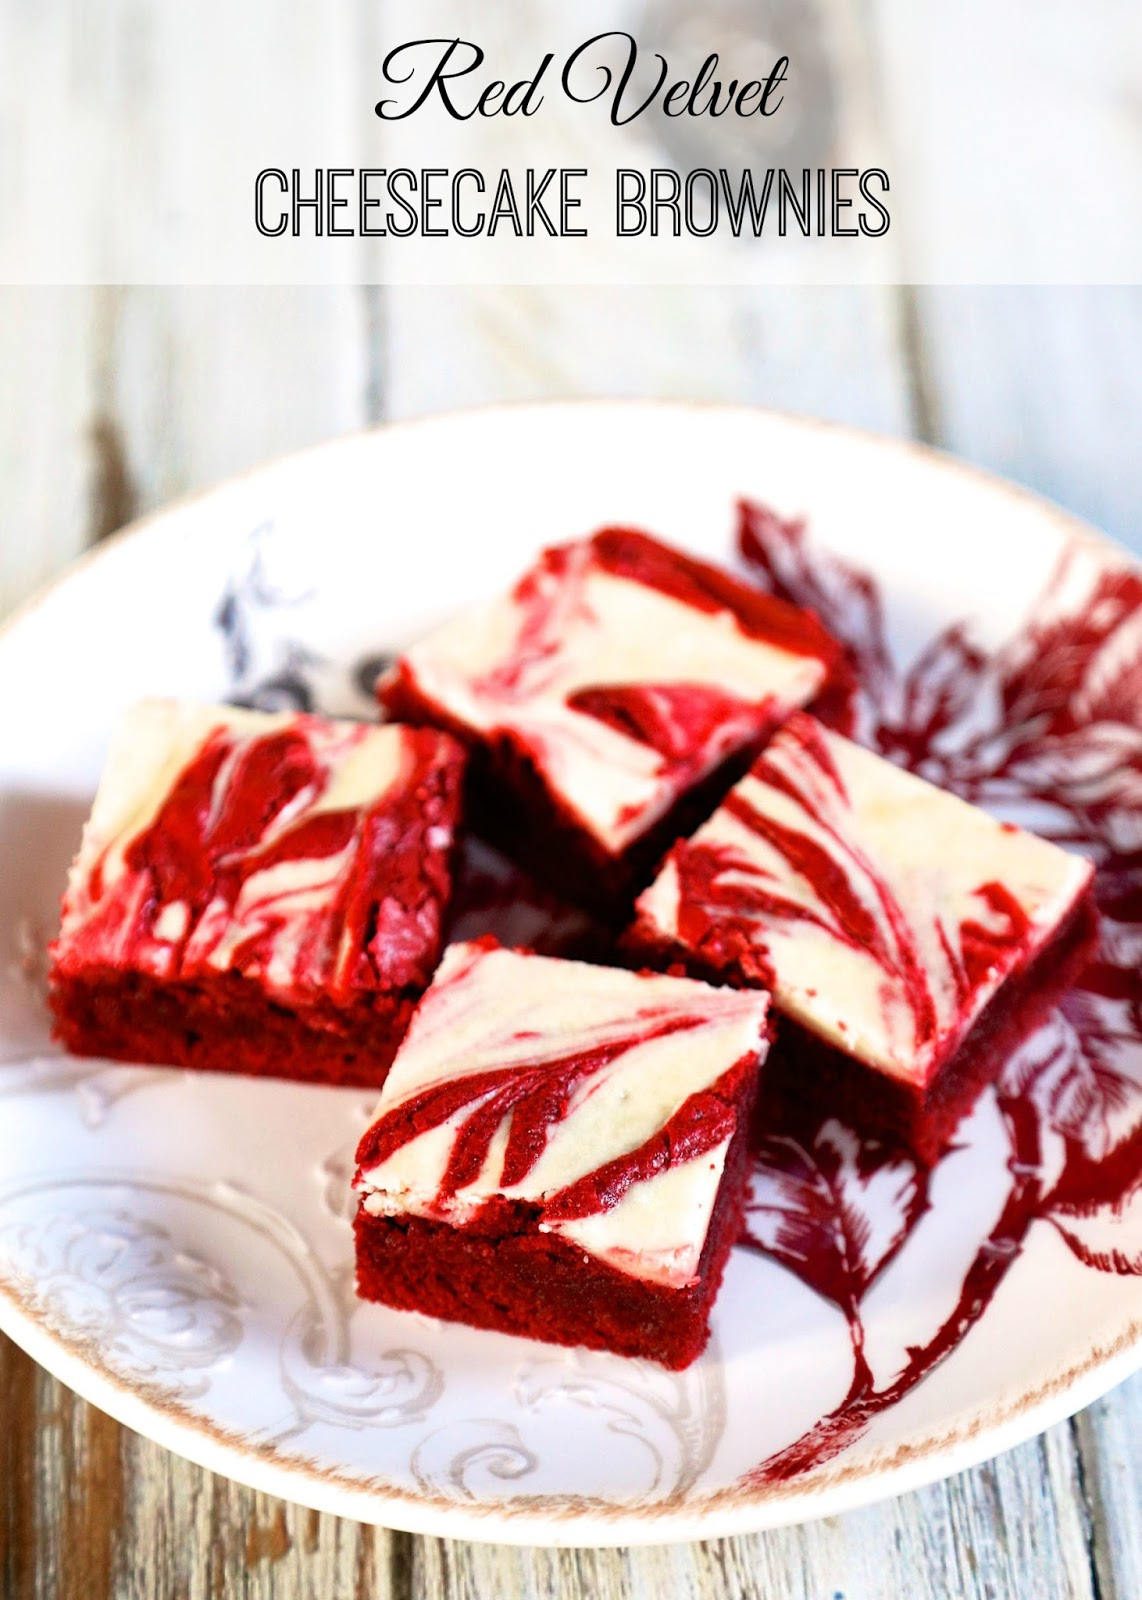 Red Velvet Cheesecake Brownies Homemade With Swirled In The Batter